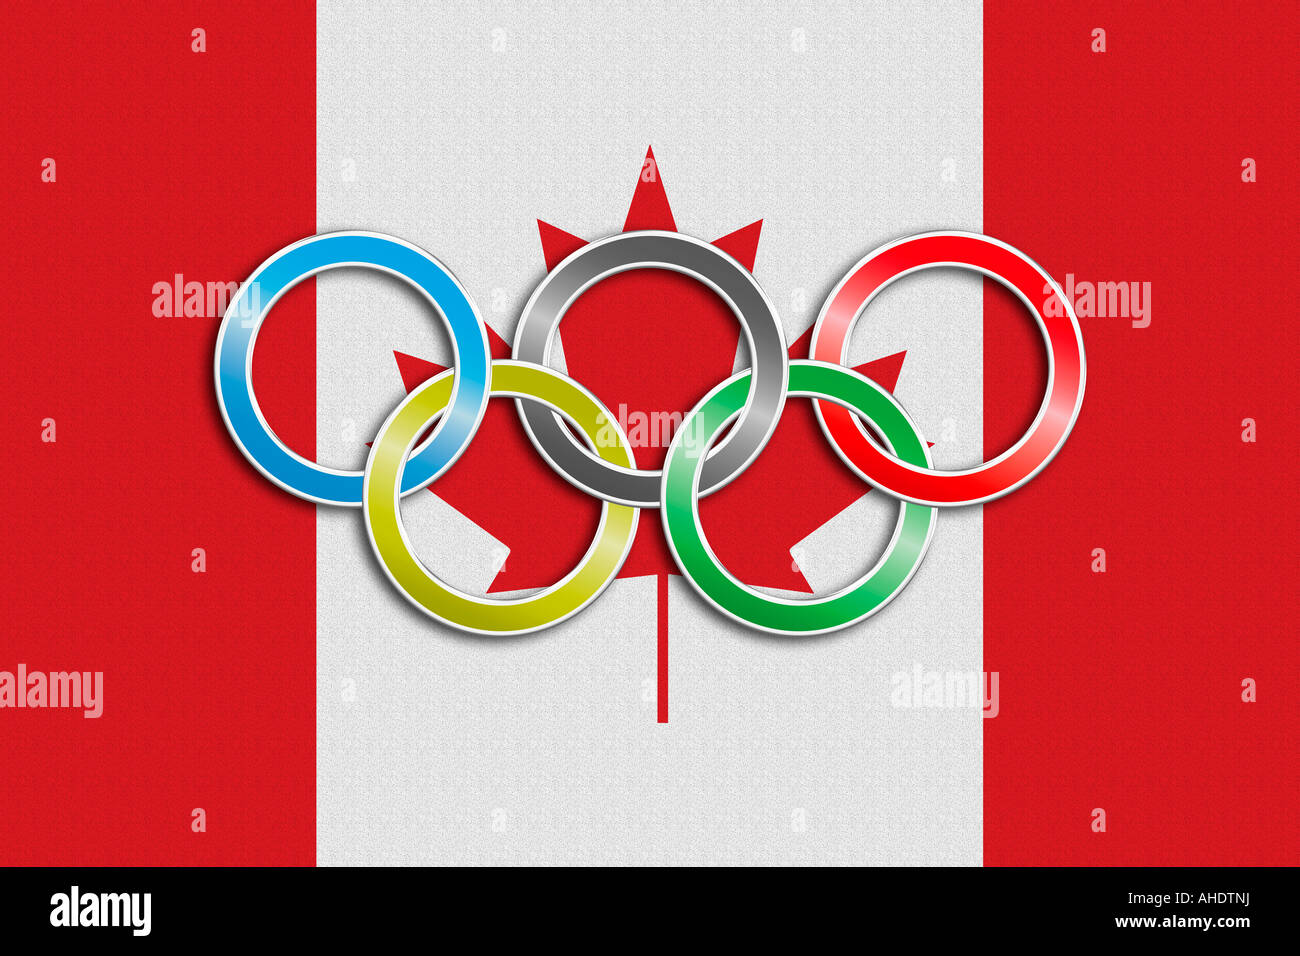 Uncategorized Olympic Symbol flag of canada with olympic symbol stock photo royalty free image symbol